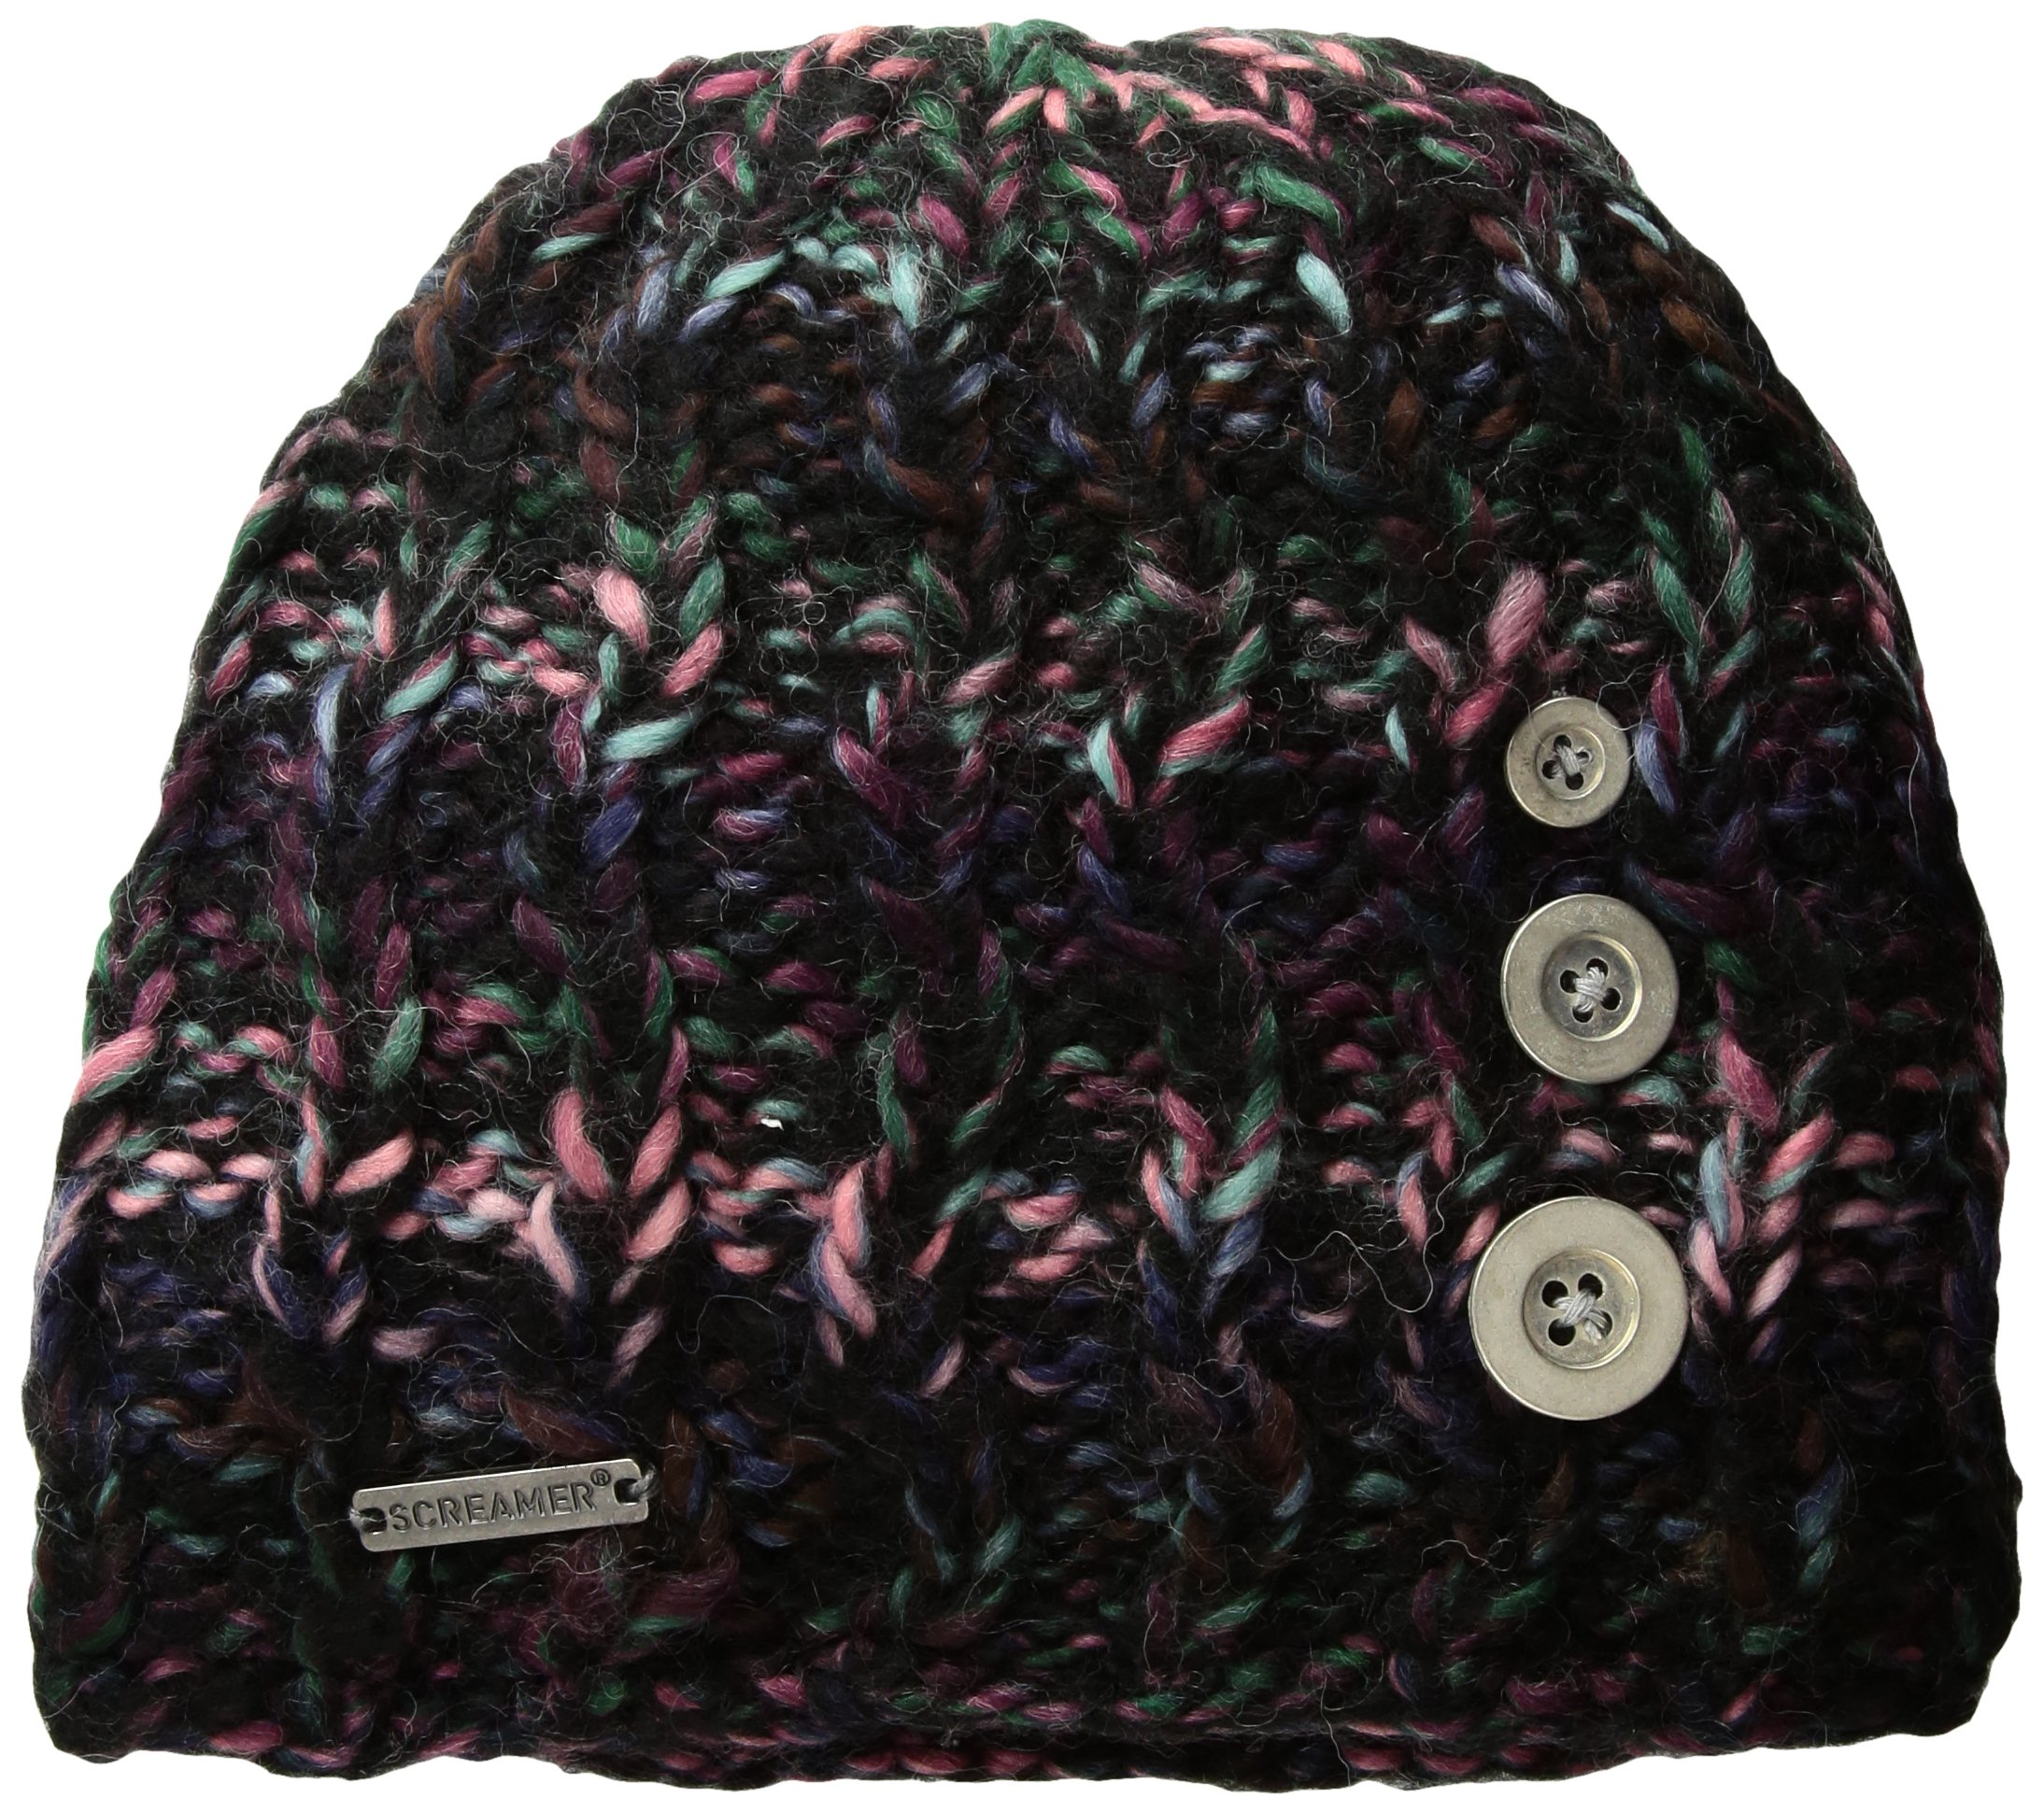 Screamer Tapestry Buttons Beanie, Black/Dusty Rose/Aqua, One Size